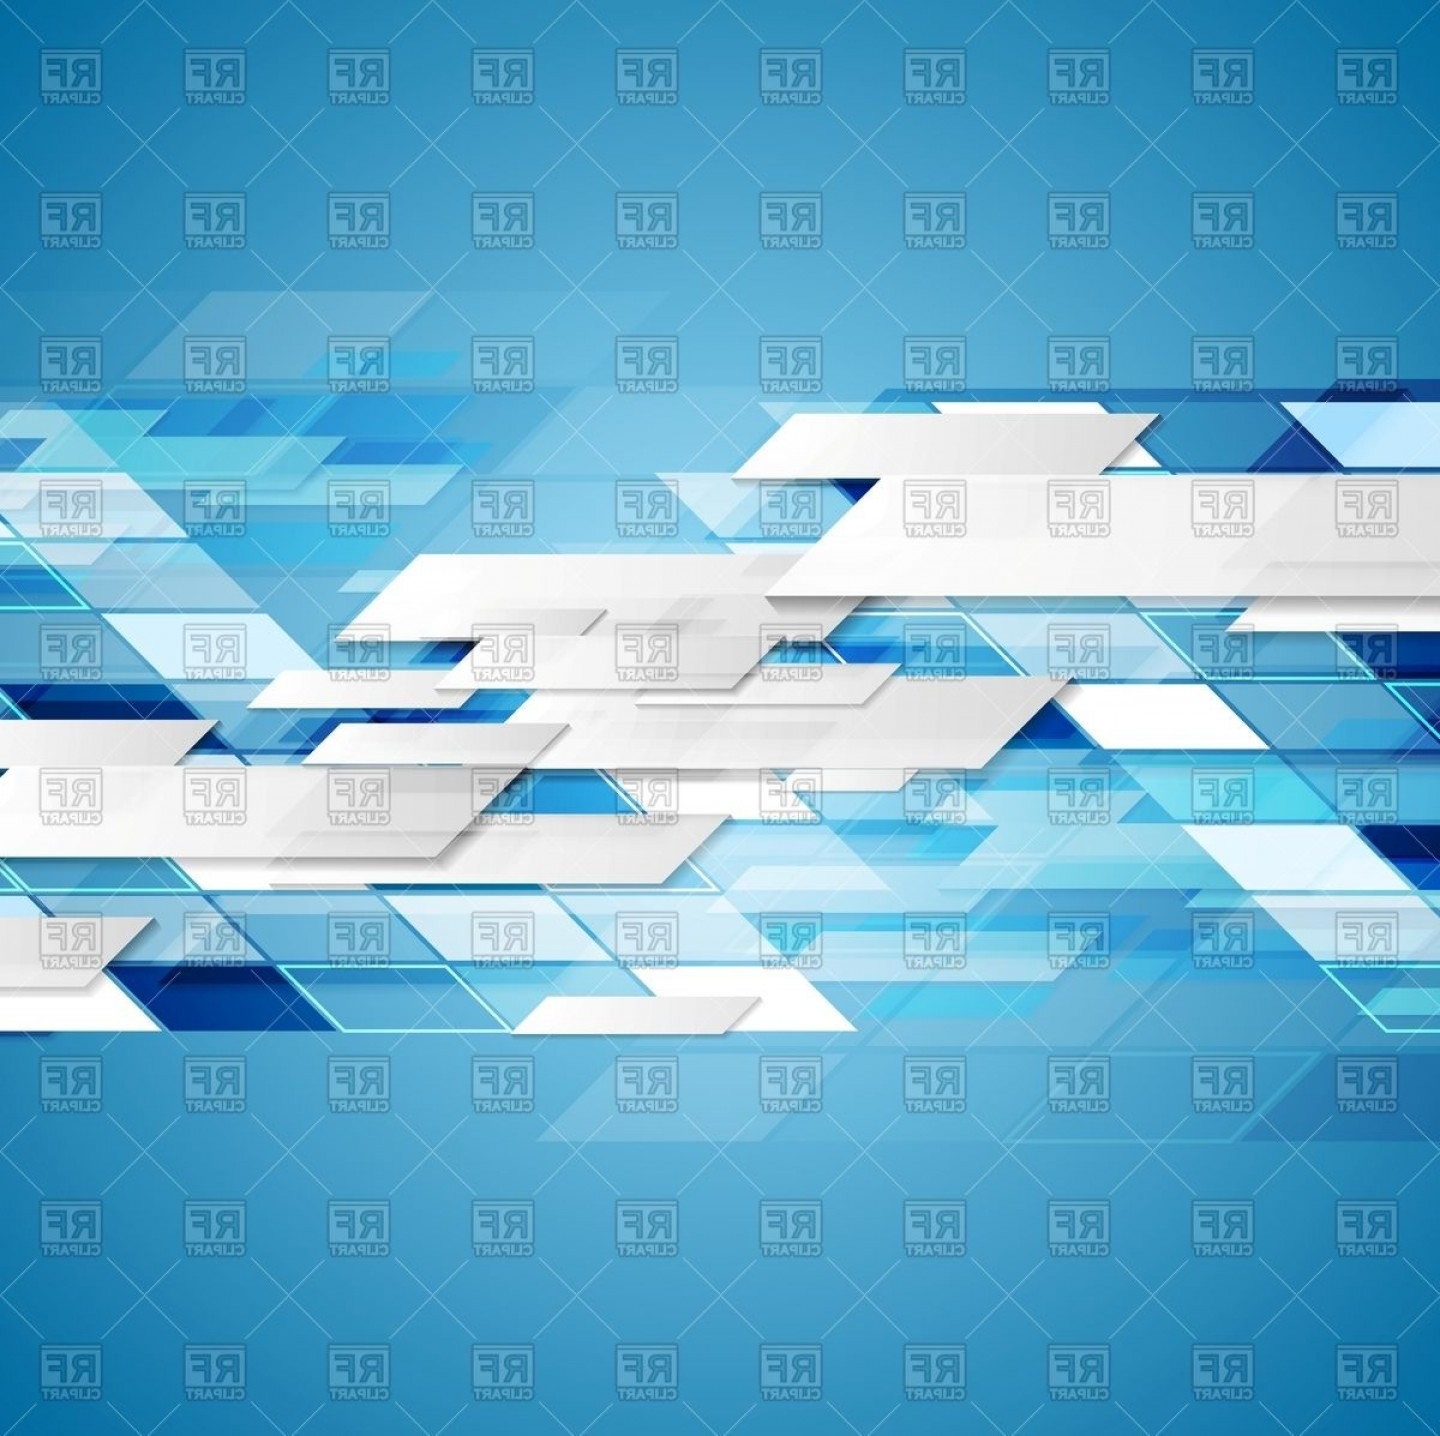 Blue Technology Vector Illustration: Abstract Blue Technology Background Vector Clipart